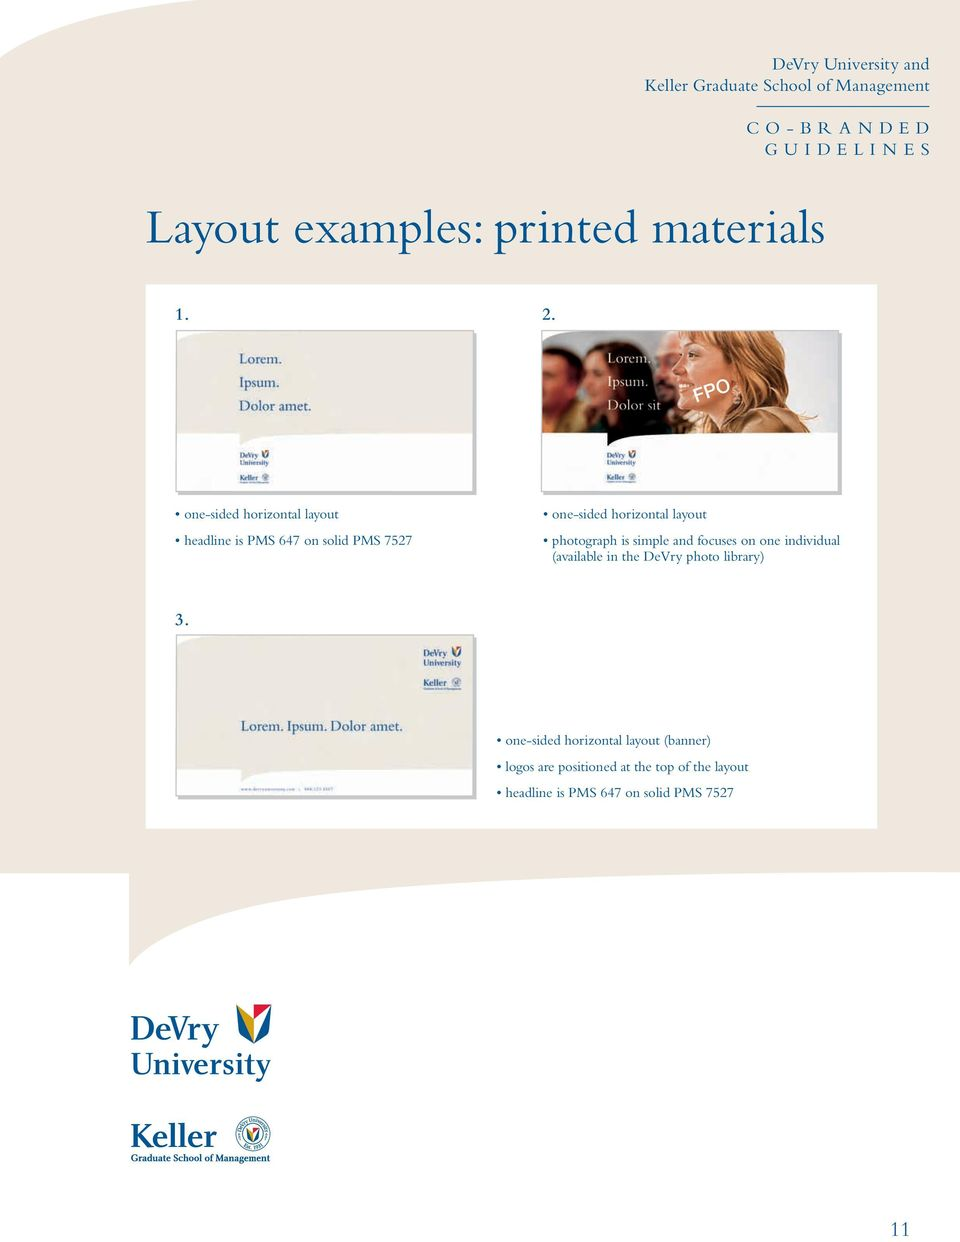 horizontal layout photograph is simple and focuses on one individual (available in the